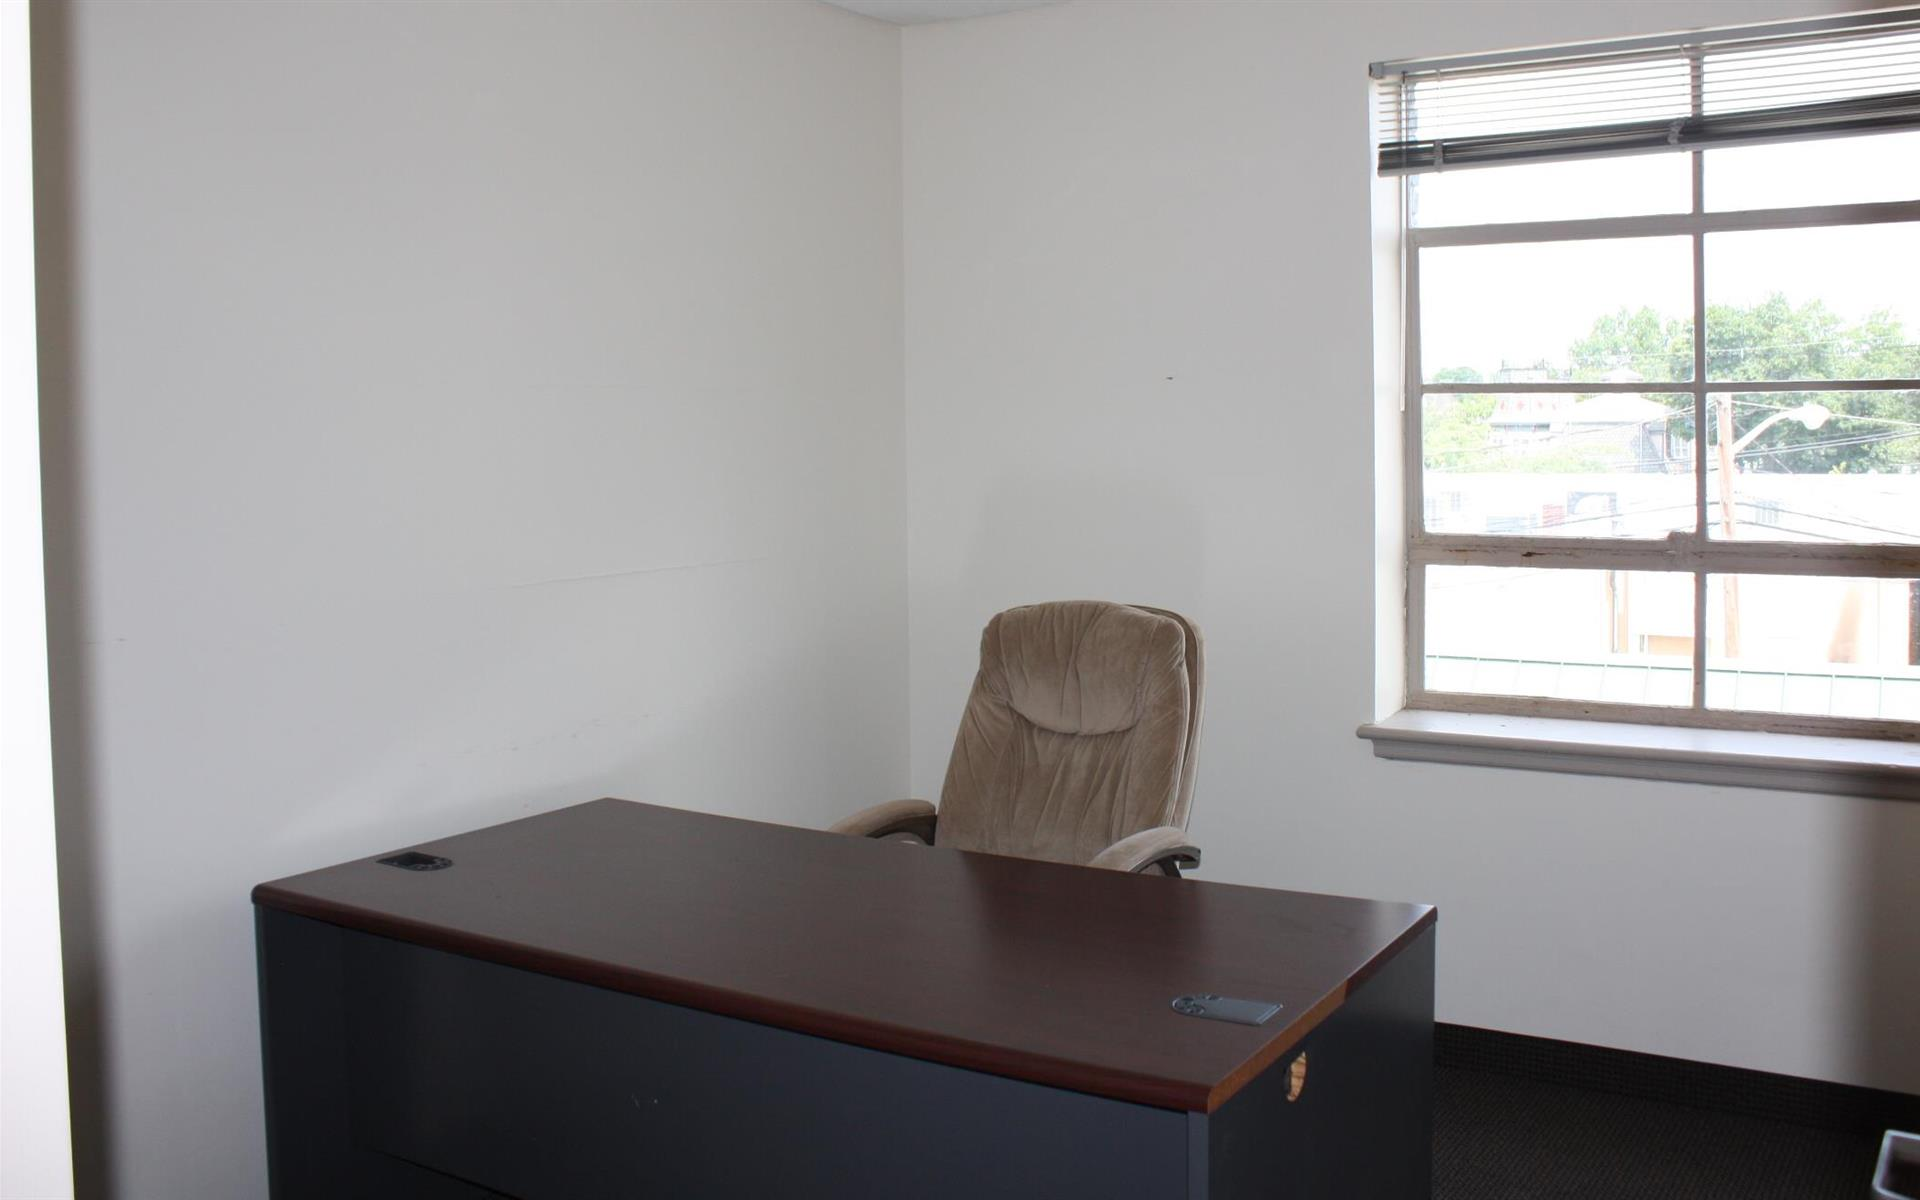 Offices and Coworking in Central NJ - Metuchen, NJ - Suite 210 - Private Office